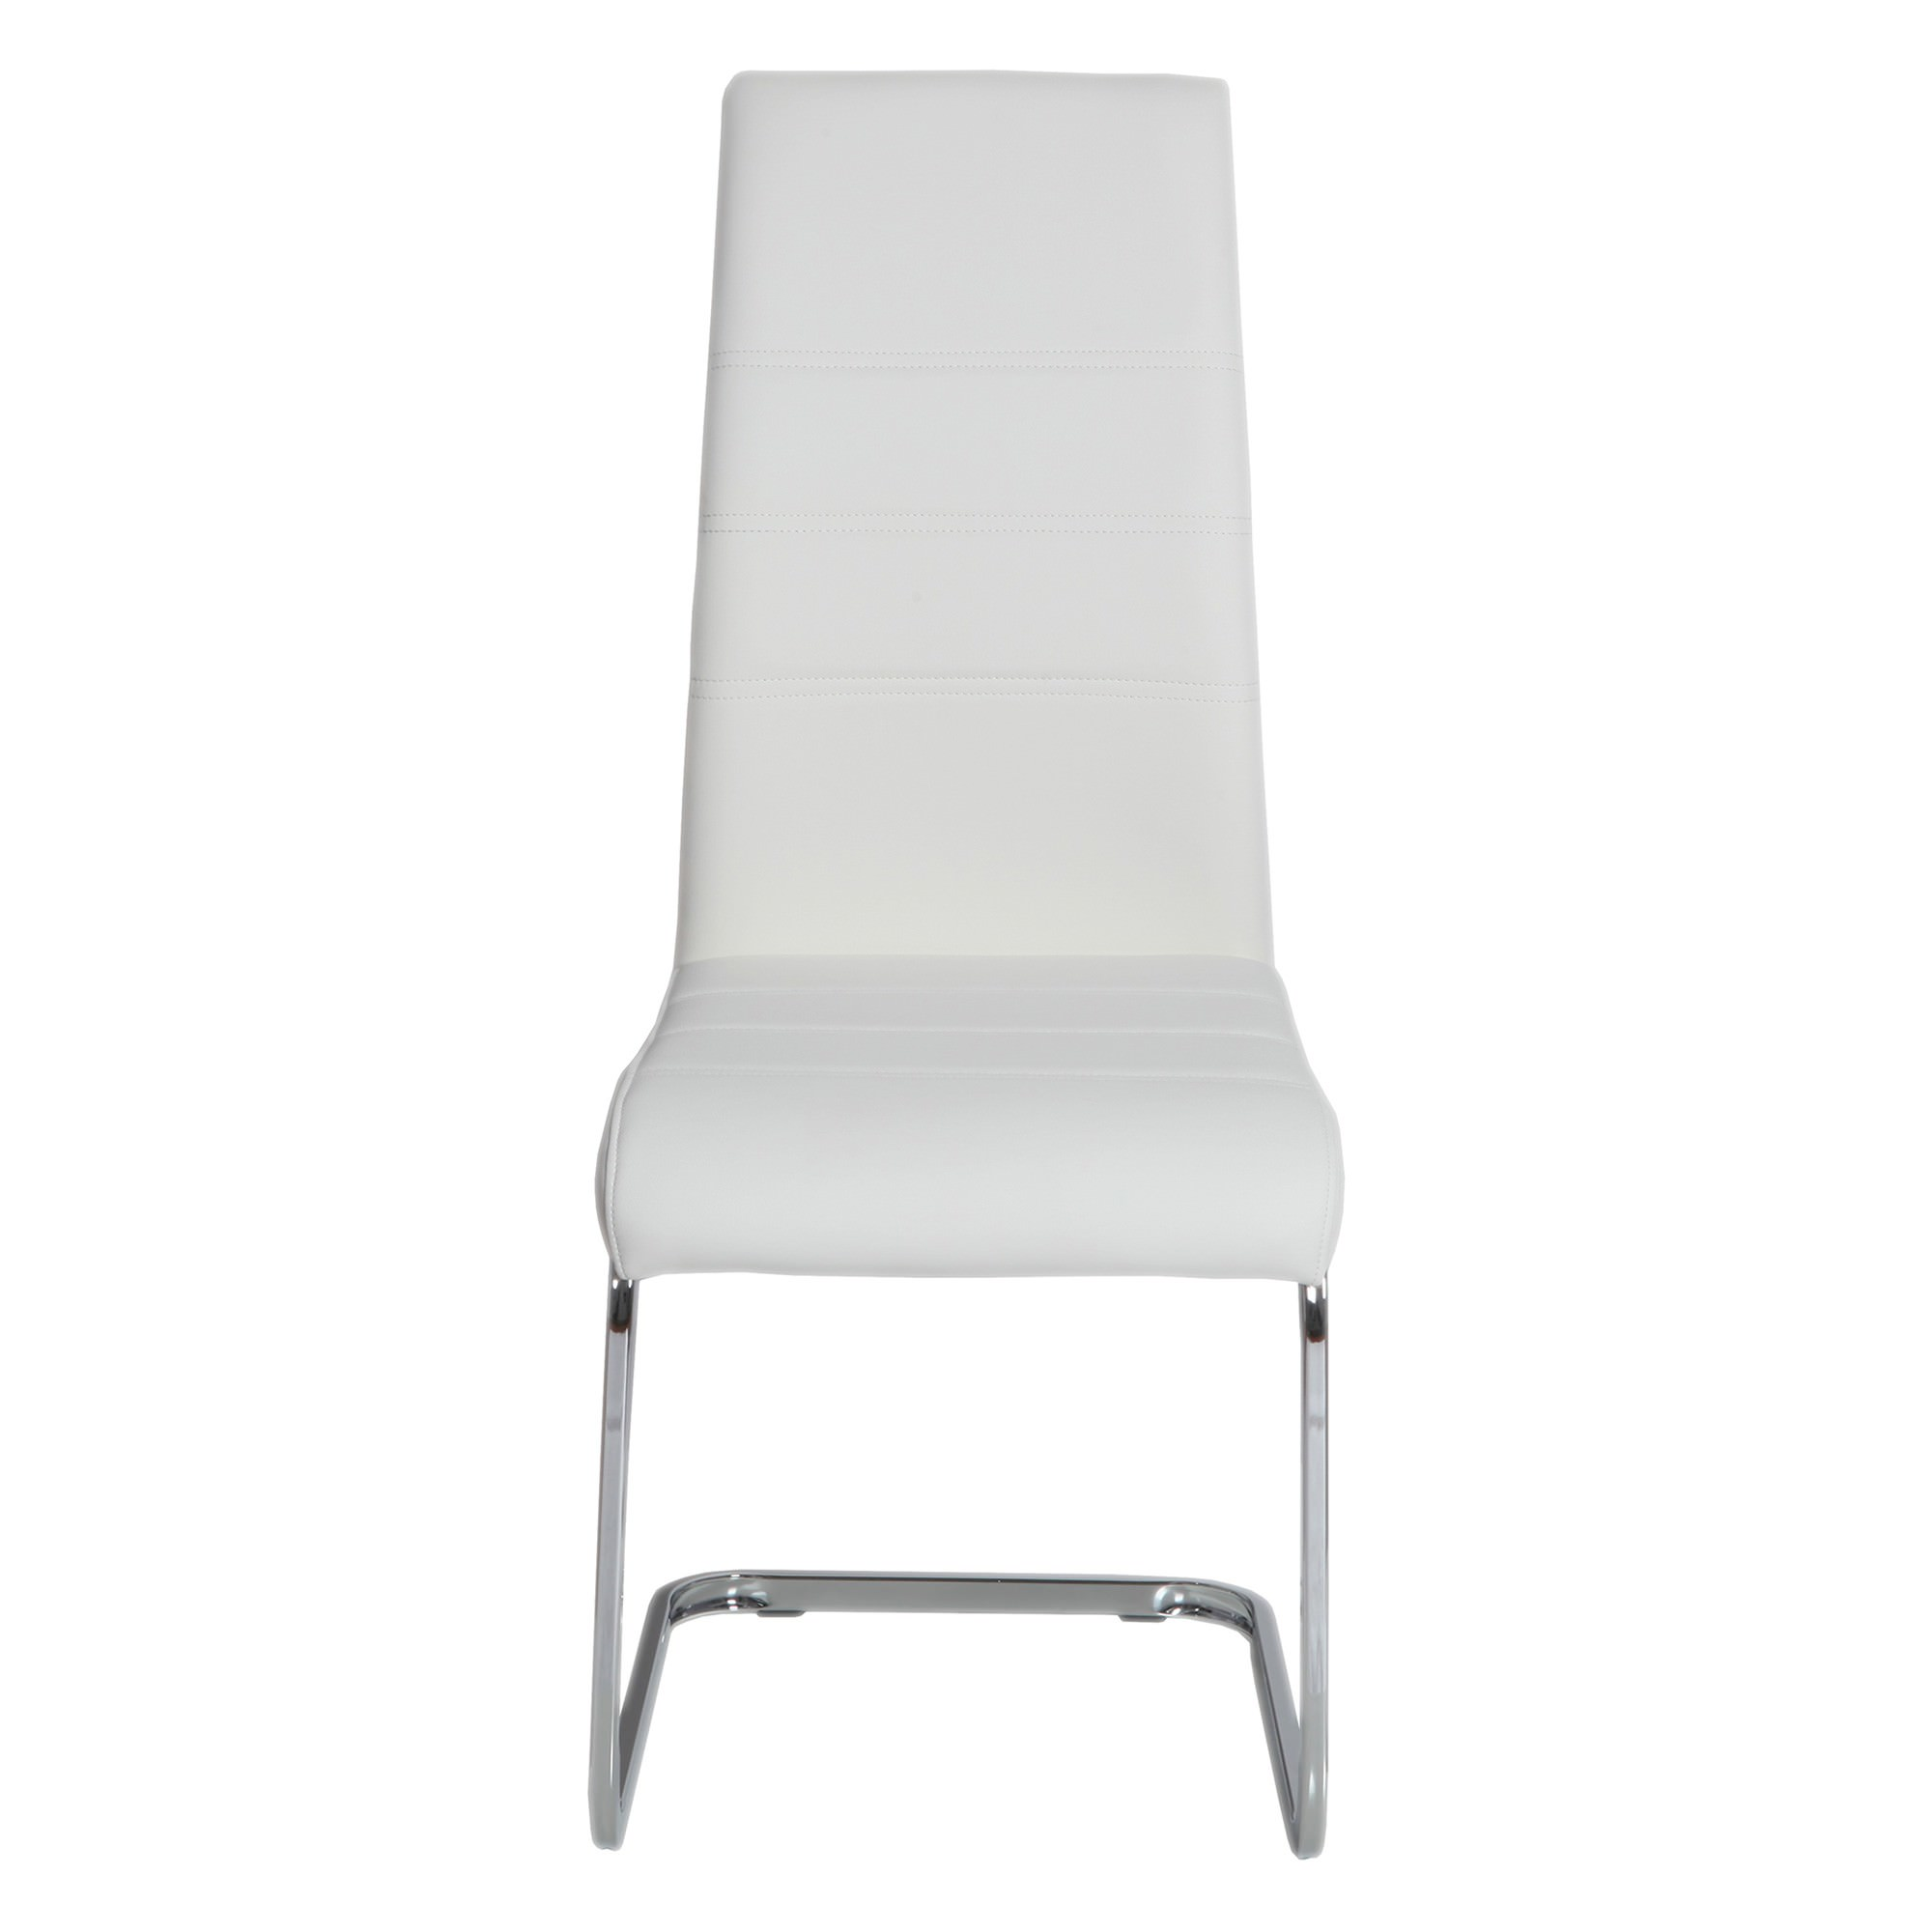 Morton Faux Leather Dining Chair, White